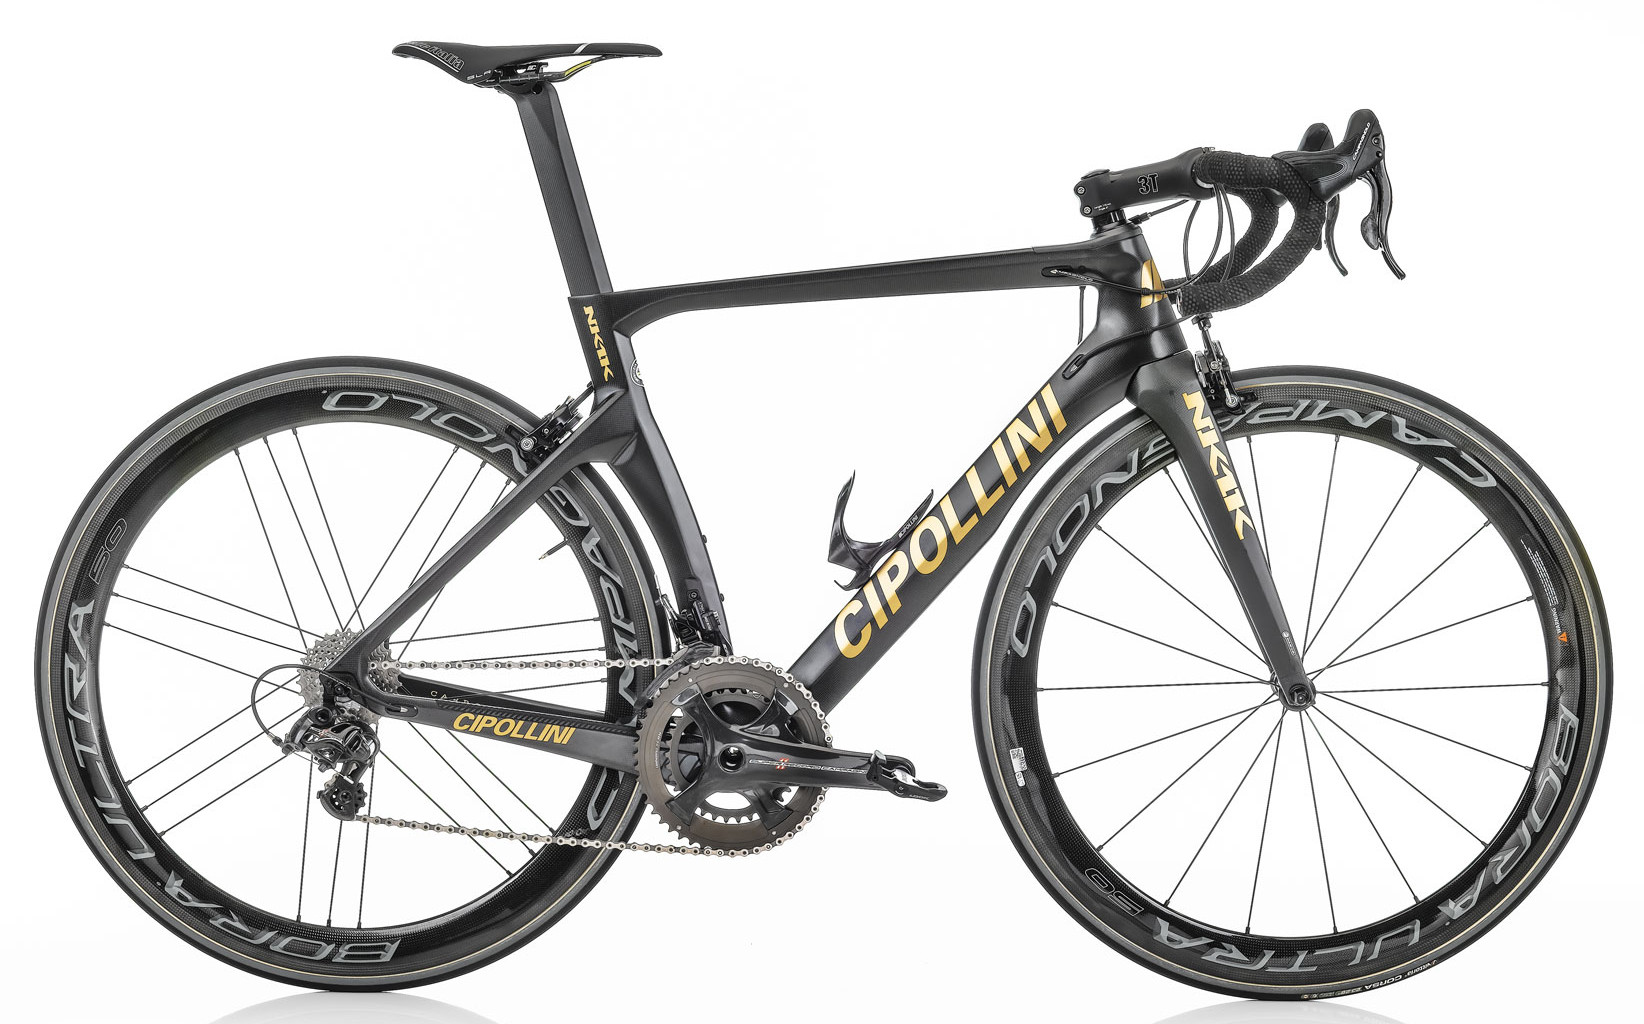 First Look Cipollini Nk1k Disc